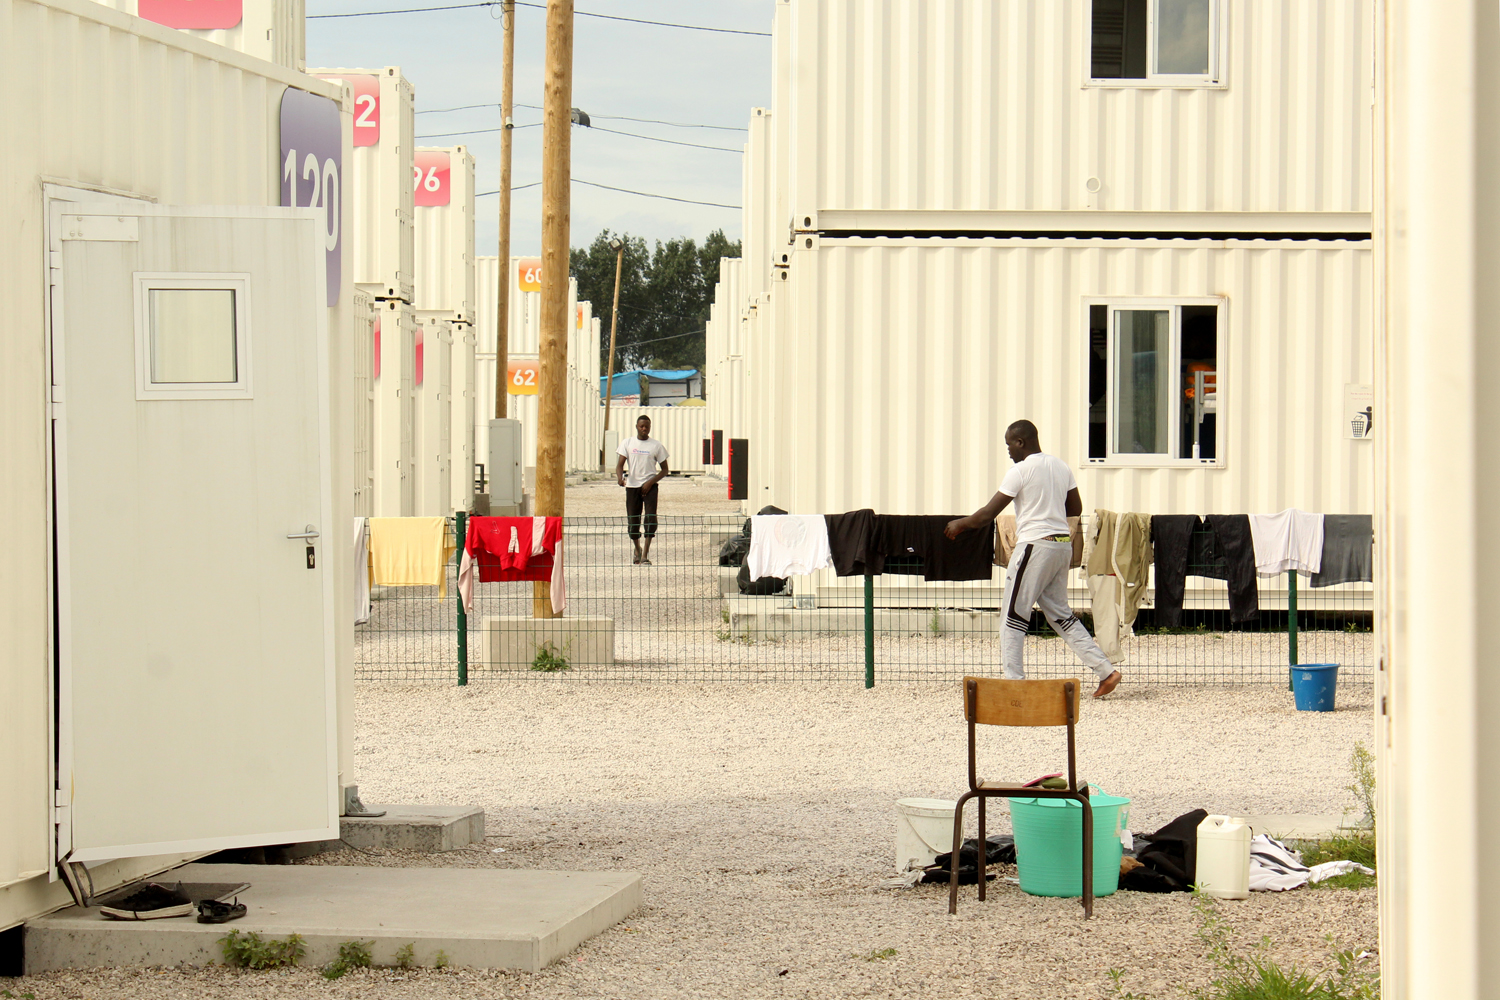 calais-photo-by-leopold-lambert-12